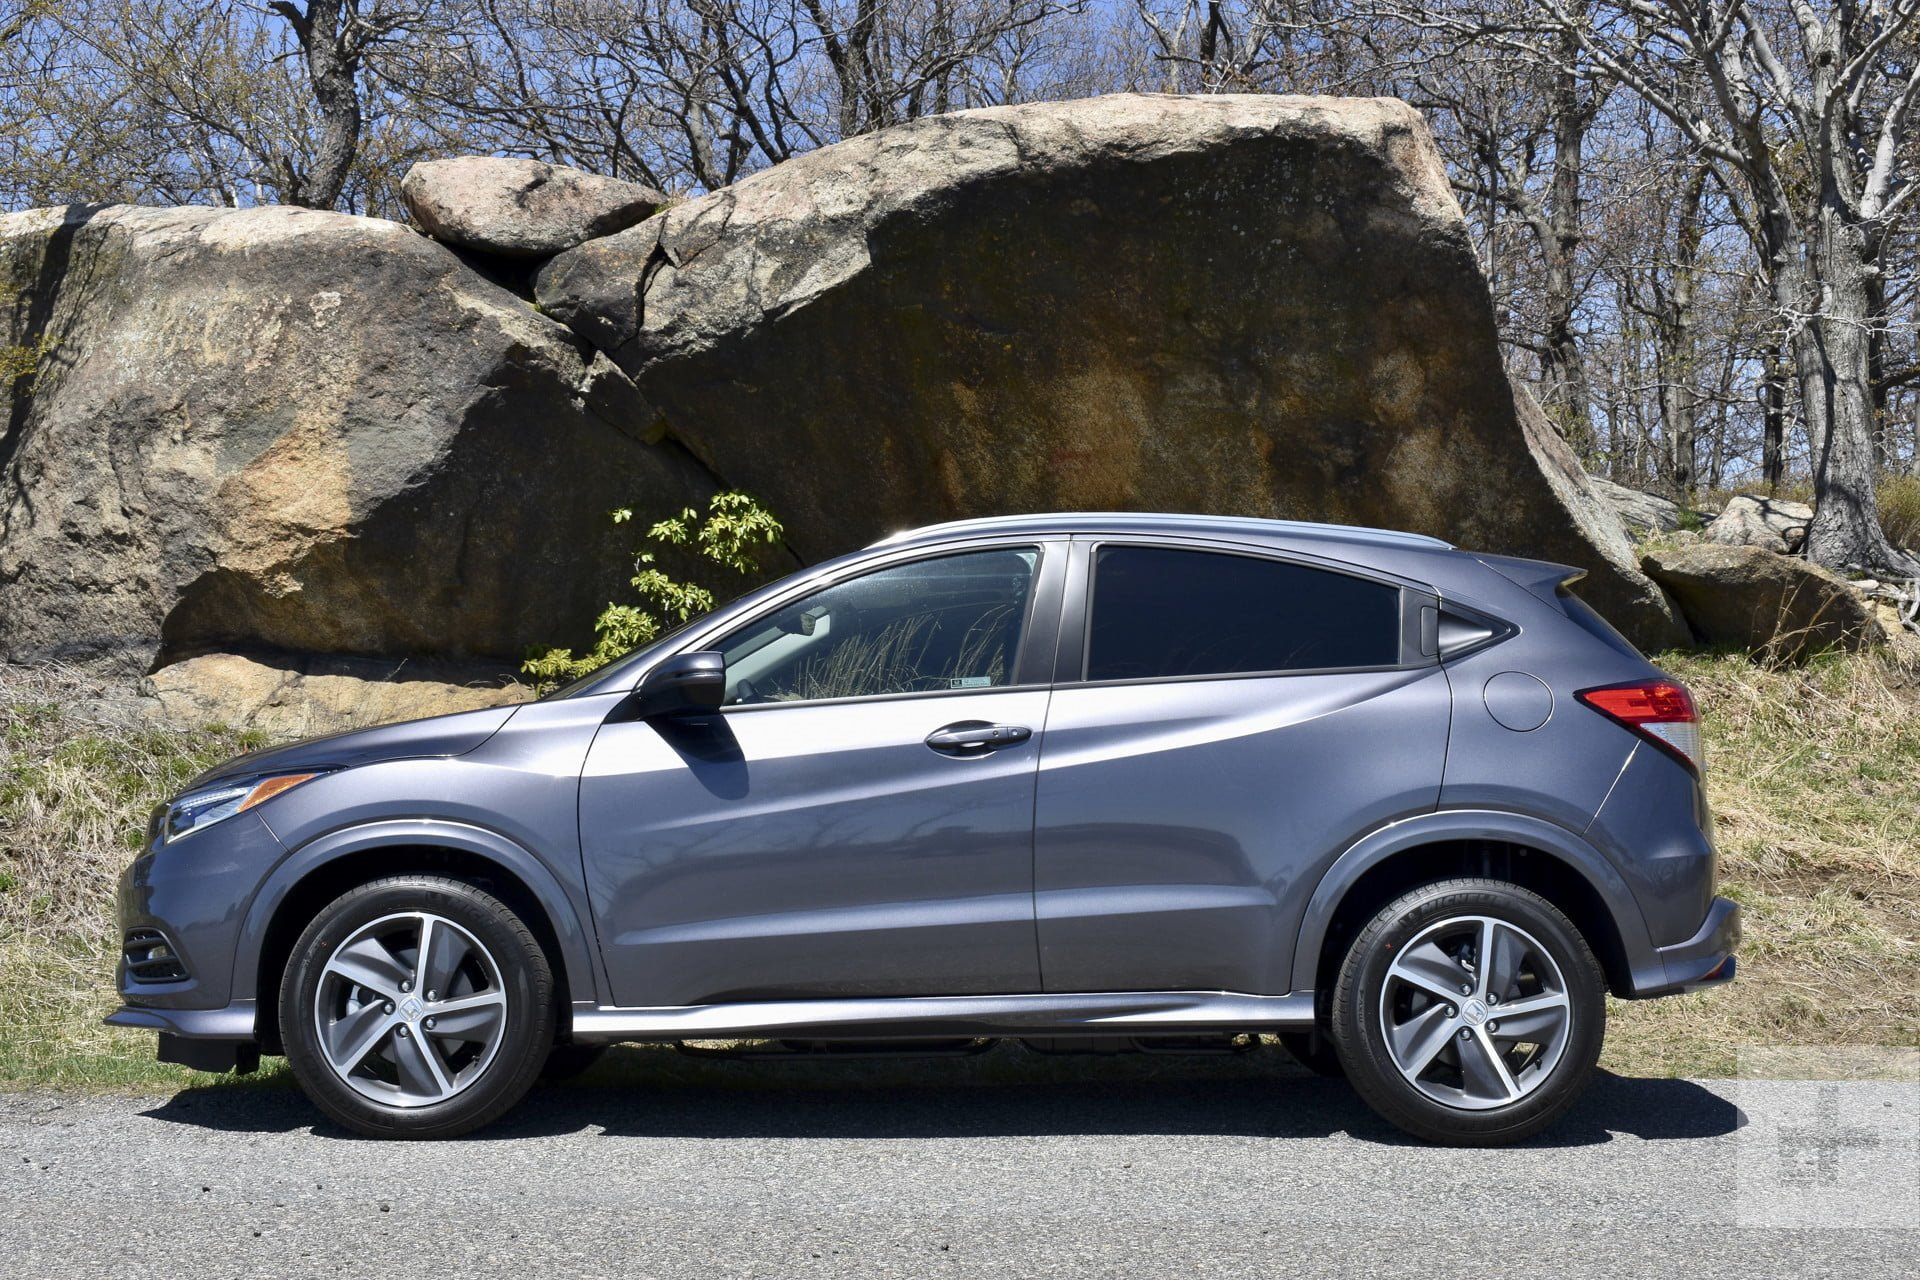 New 2019 Honda HR-V LX for sale $21,920 at M and V Leasing in Brooklyn NY 11223 1